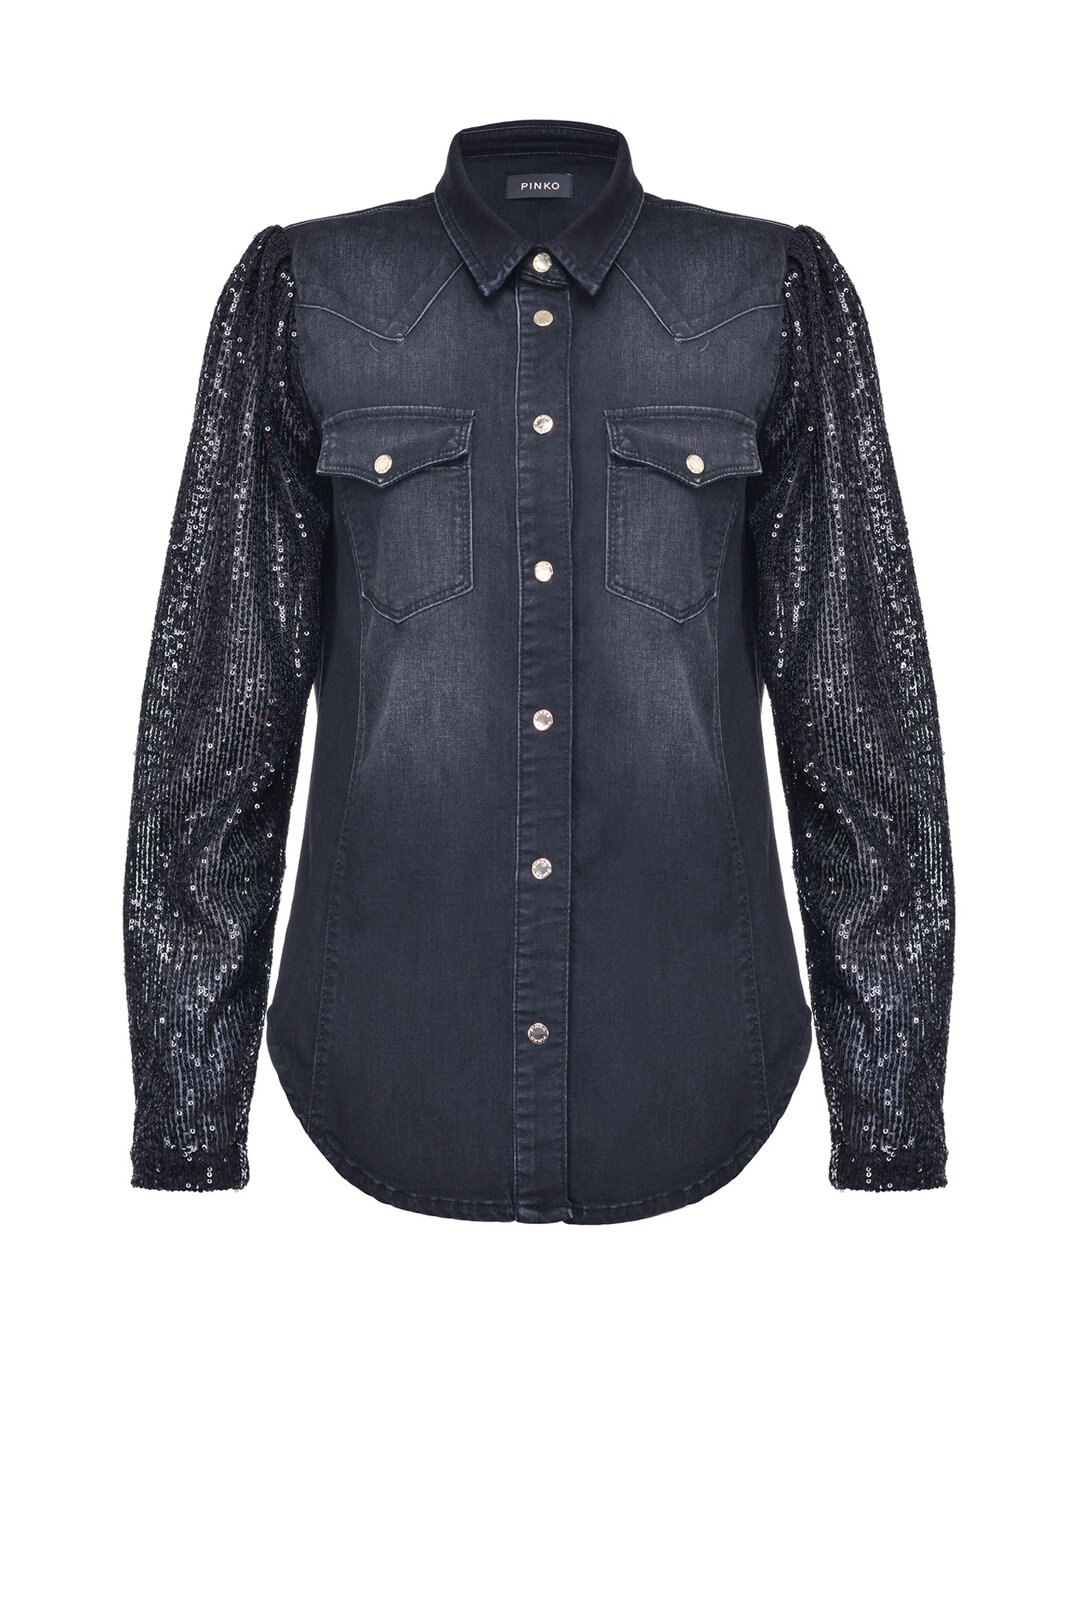 Denim Shirt With Sequined Sleeves - Pinko